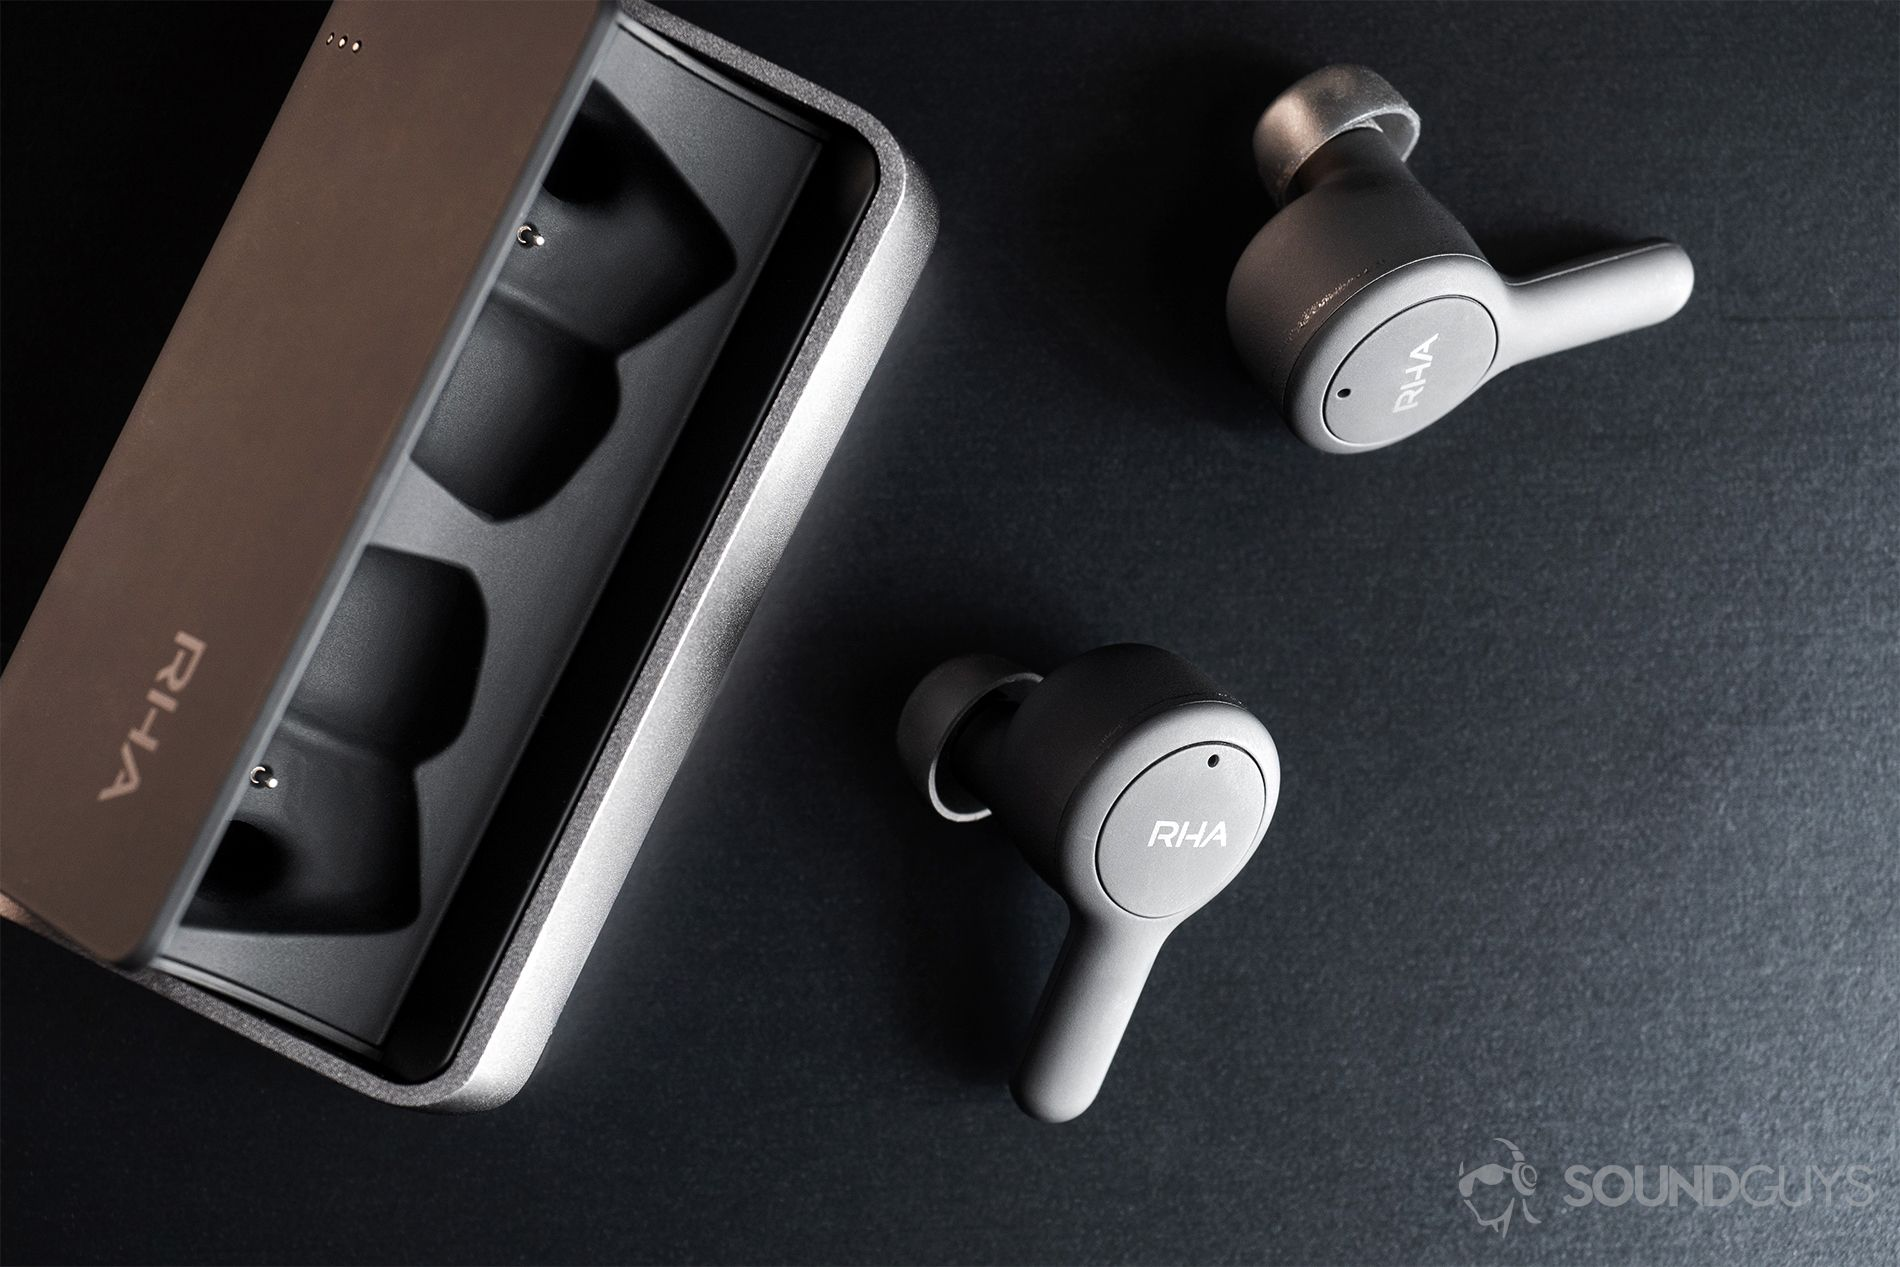 ebca0e974f3 Best AirPods alternatives: True wireless for all - SoundGuys Wireless  Earbuds, Bluetooth, Headphones